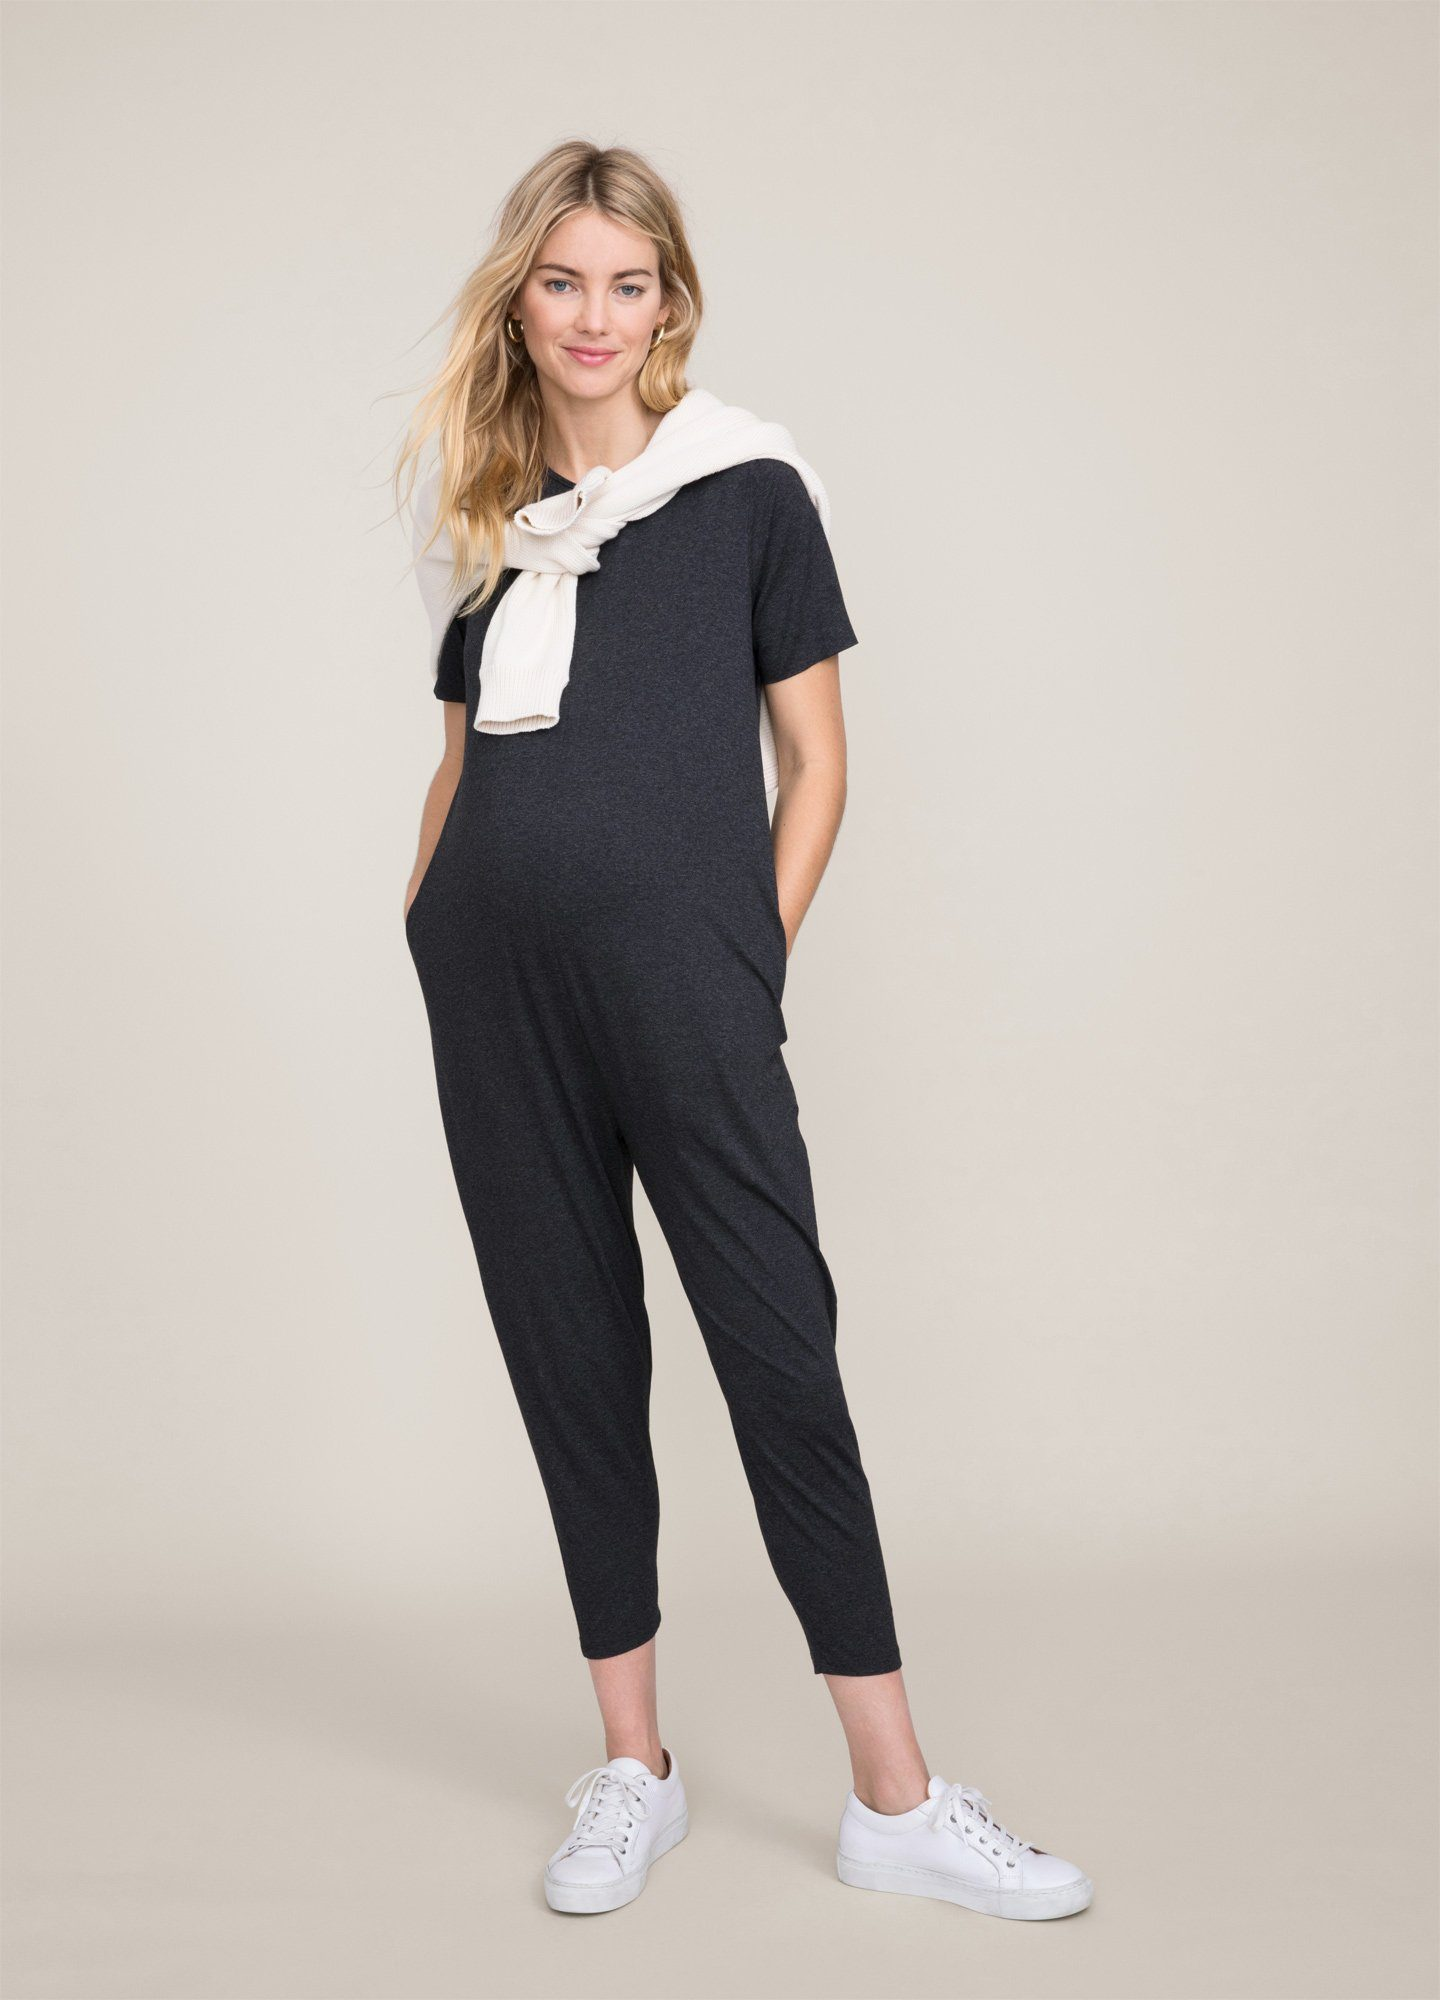 Walkabout Jumper Chic Fall Maternity Hatch Collection Hatch Collection